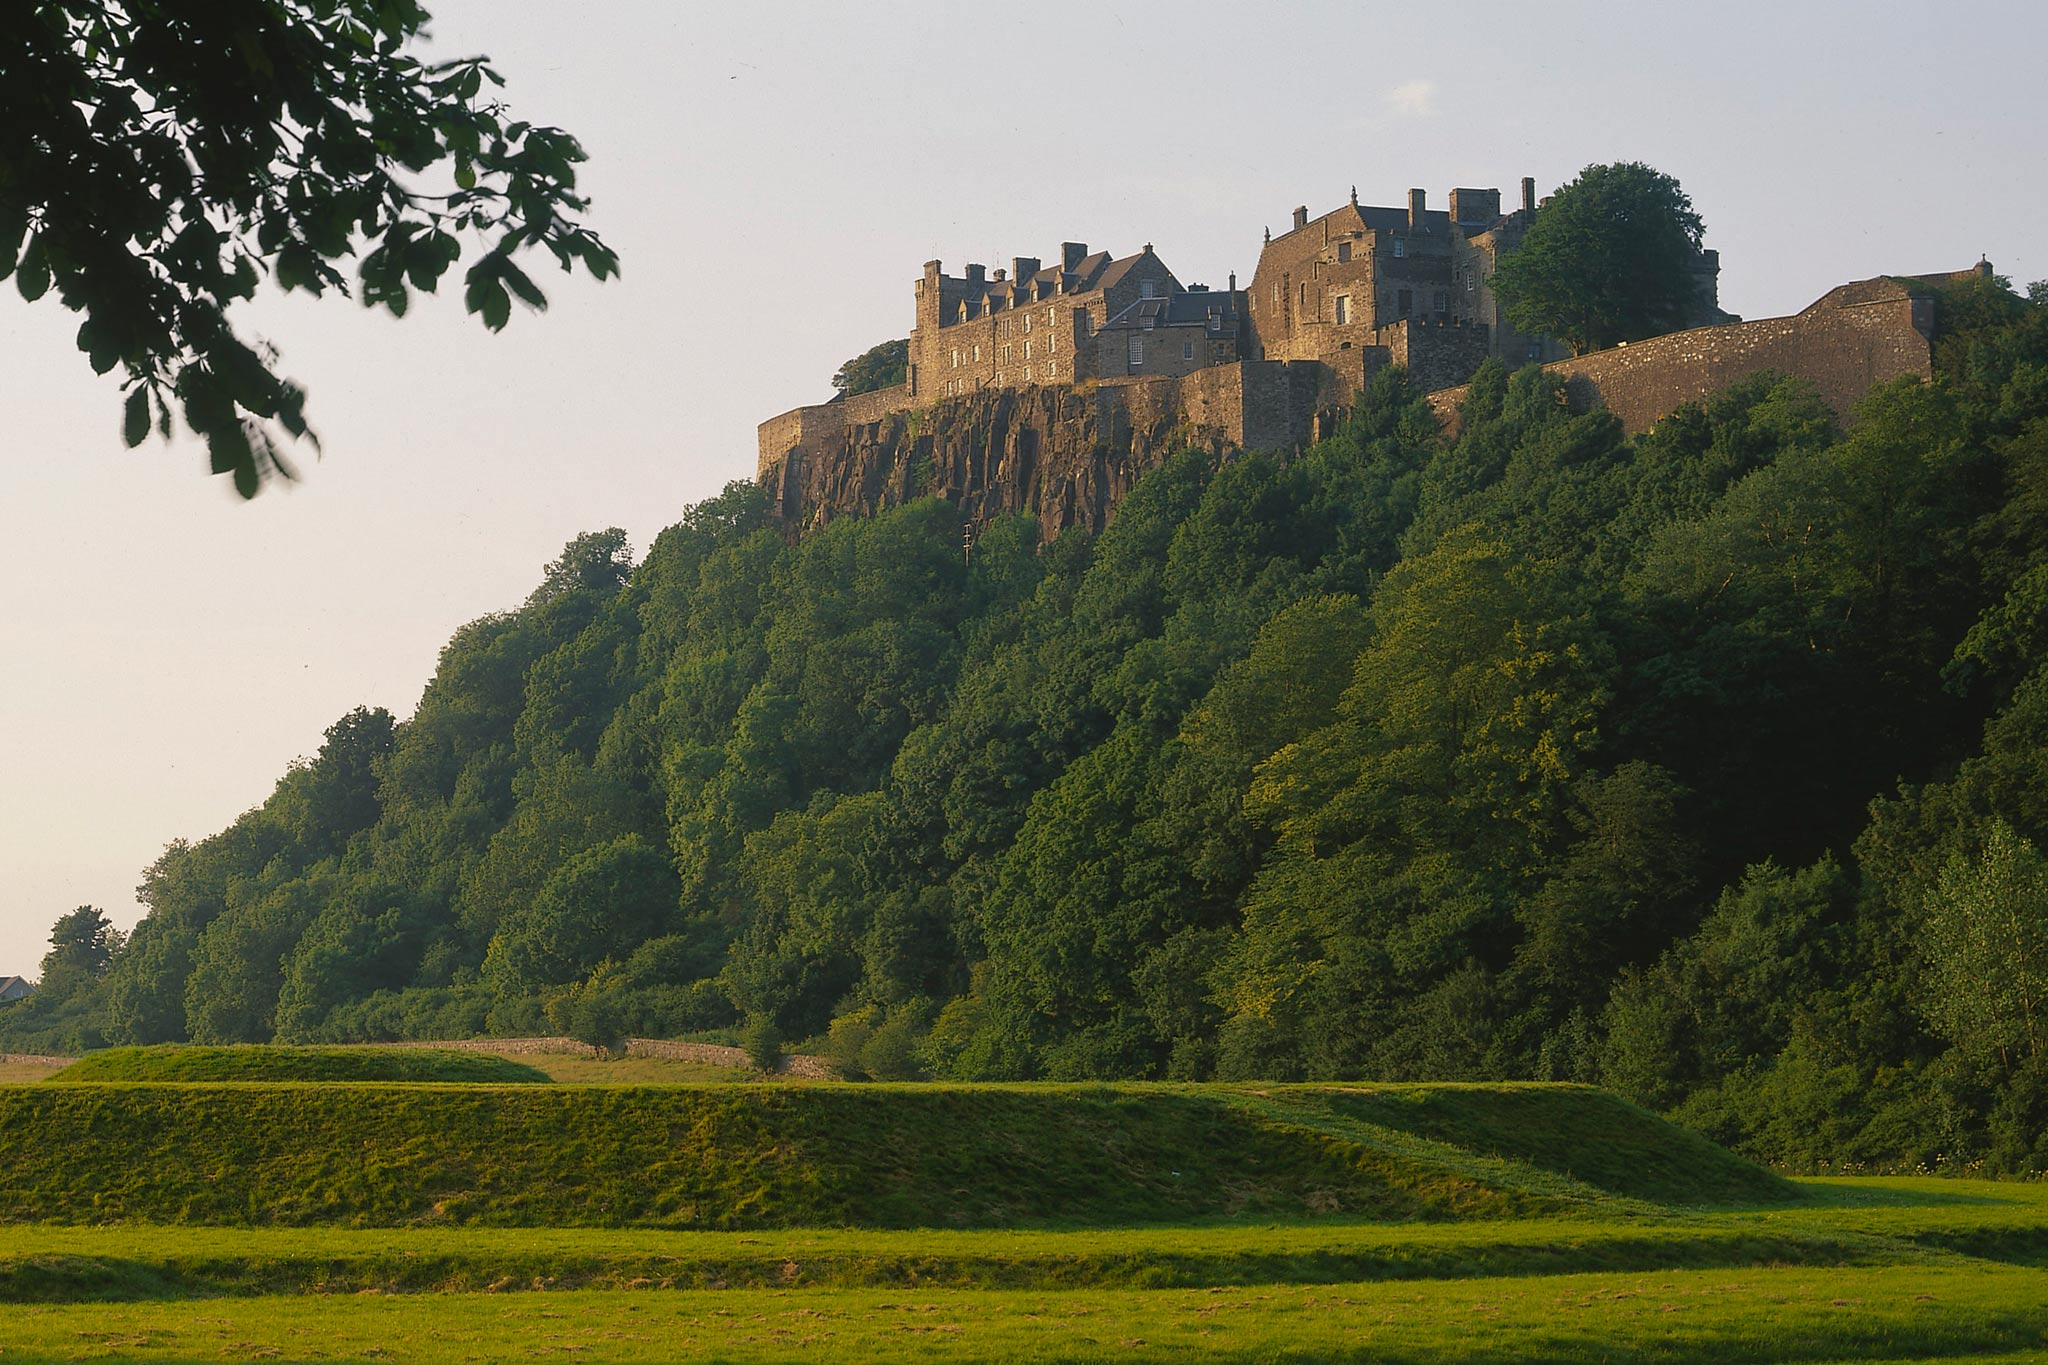 LOOKING ACROSS FIELDS FROM THE KING'S KNOT TO STIRLING CASTLE (DATING FROM MEDIEVAL TIMES AND THE PLACE OF MARY QUEEN OF SCOTS CORONATION), STIRLING.